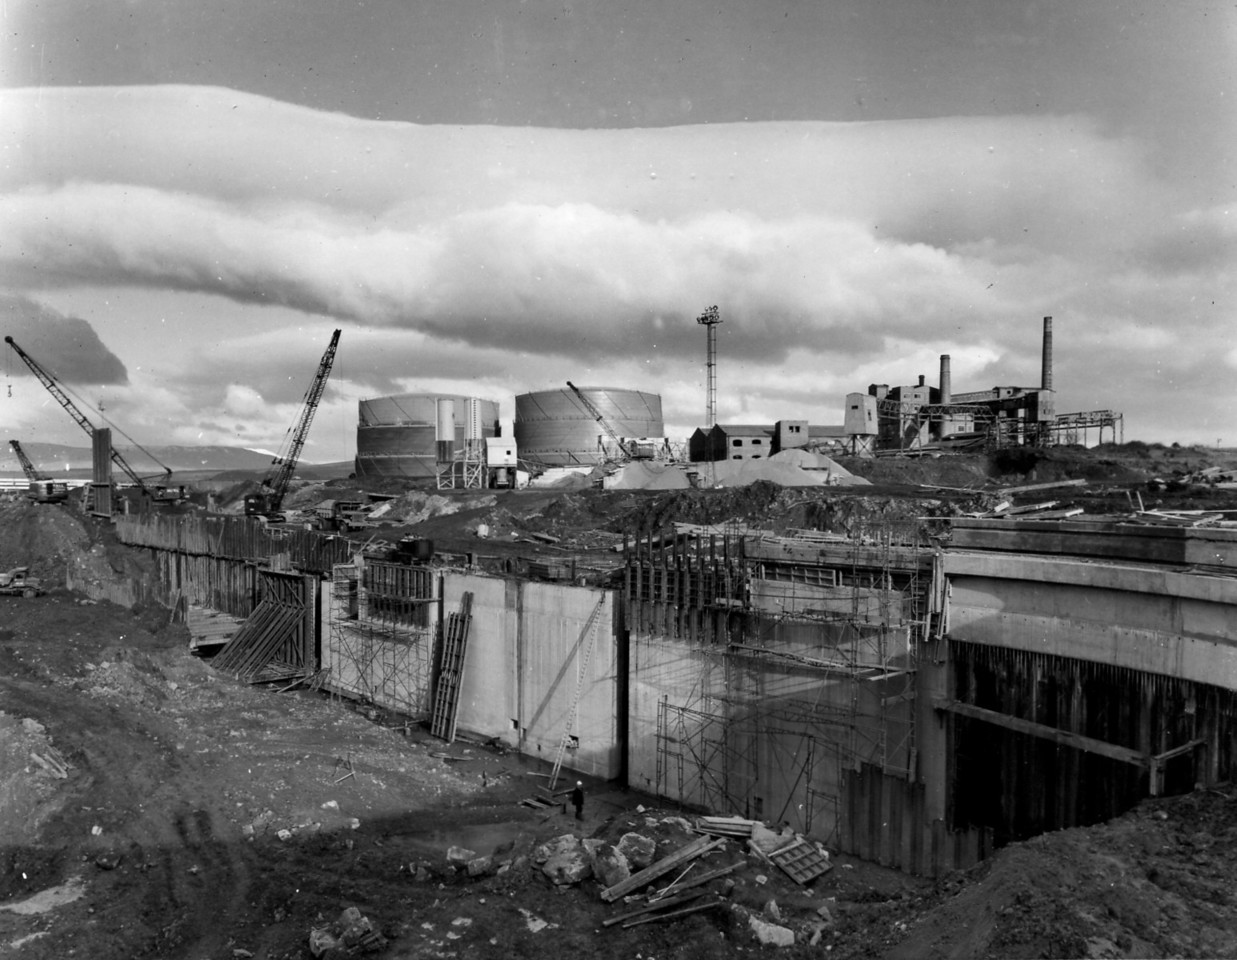 D066	Dock wall and trench excavation - east side   31/12/1962